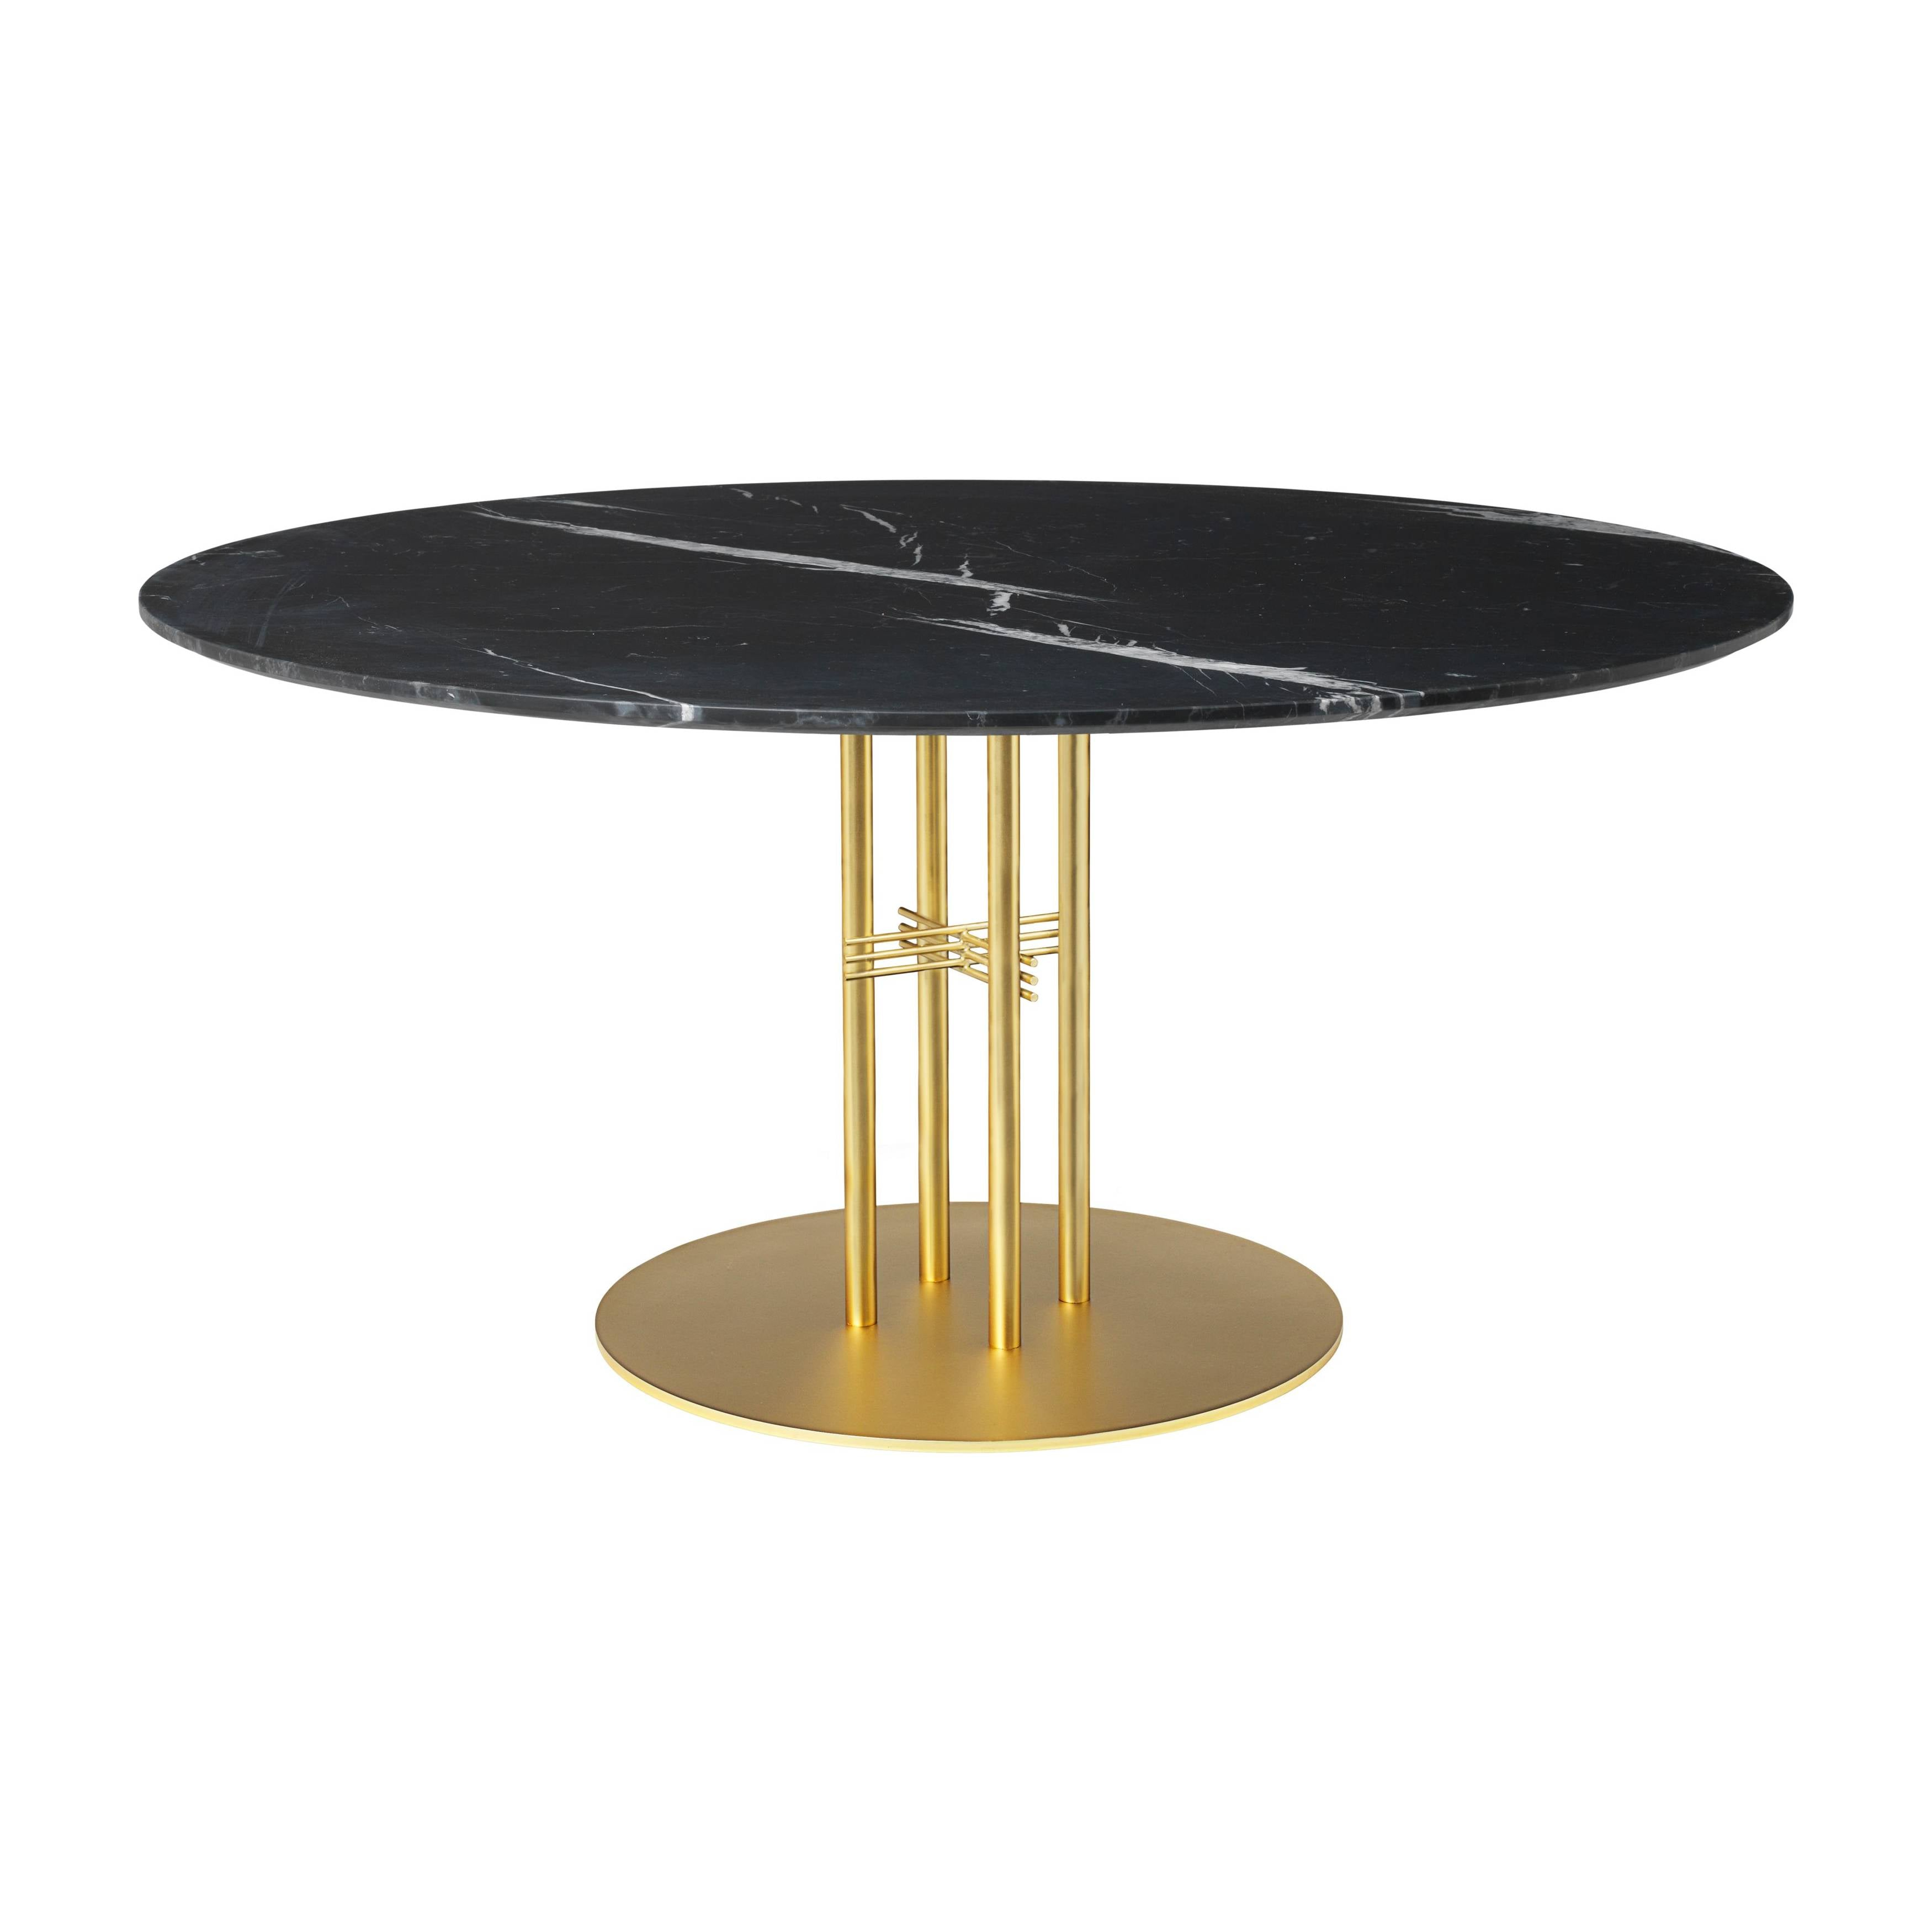 TS Column Dining Table: Extra Large + Brass Base + Black Marquina Marble